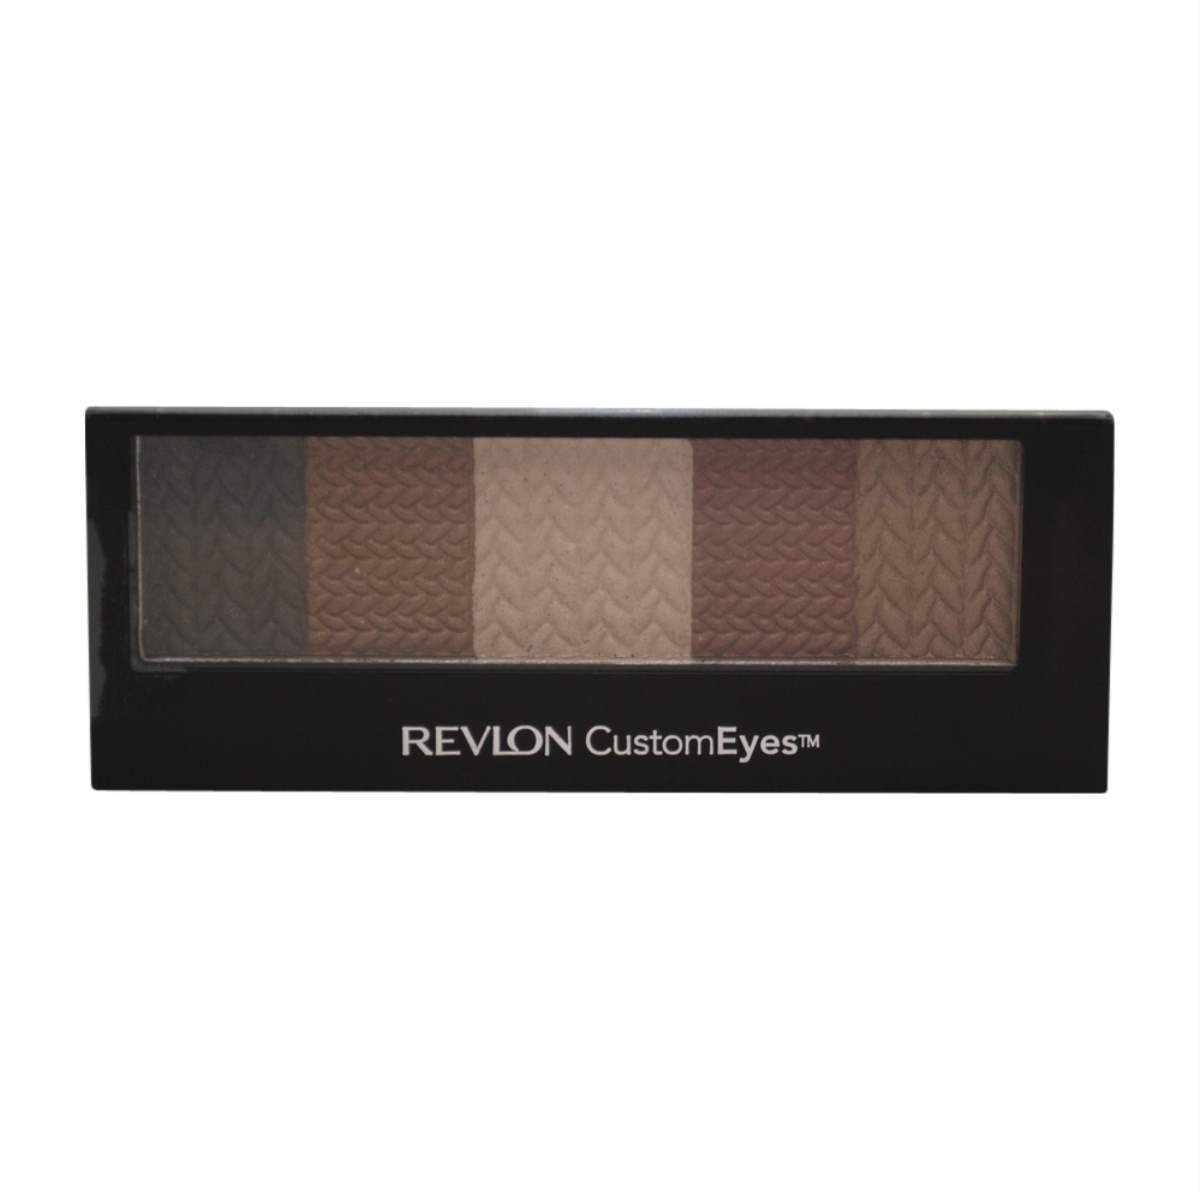 Revlon Customeyes Shadow and Liner, Naturally Glamorous, 0.20 Ounce